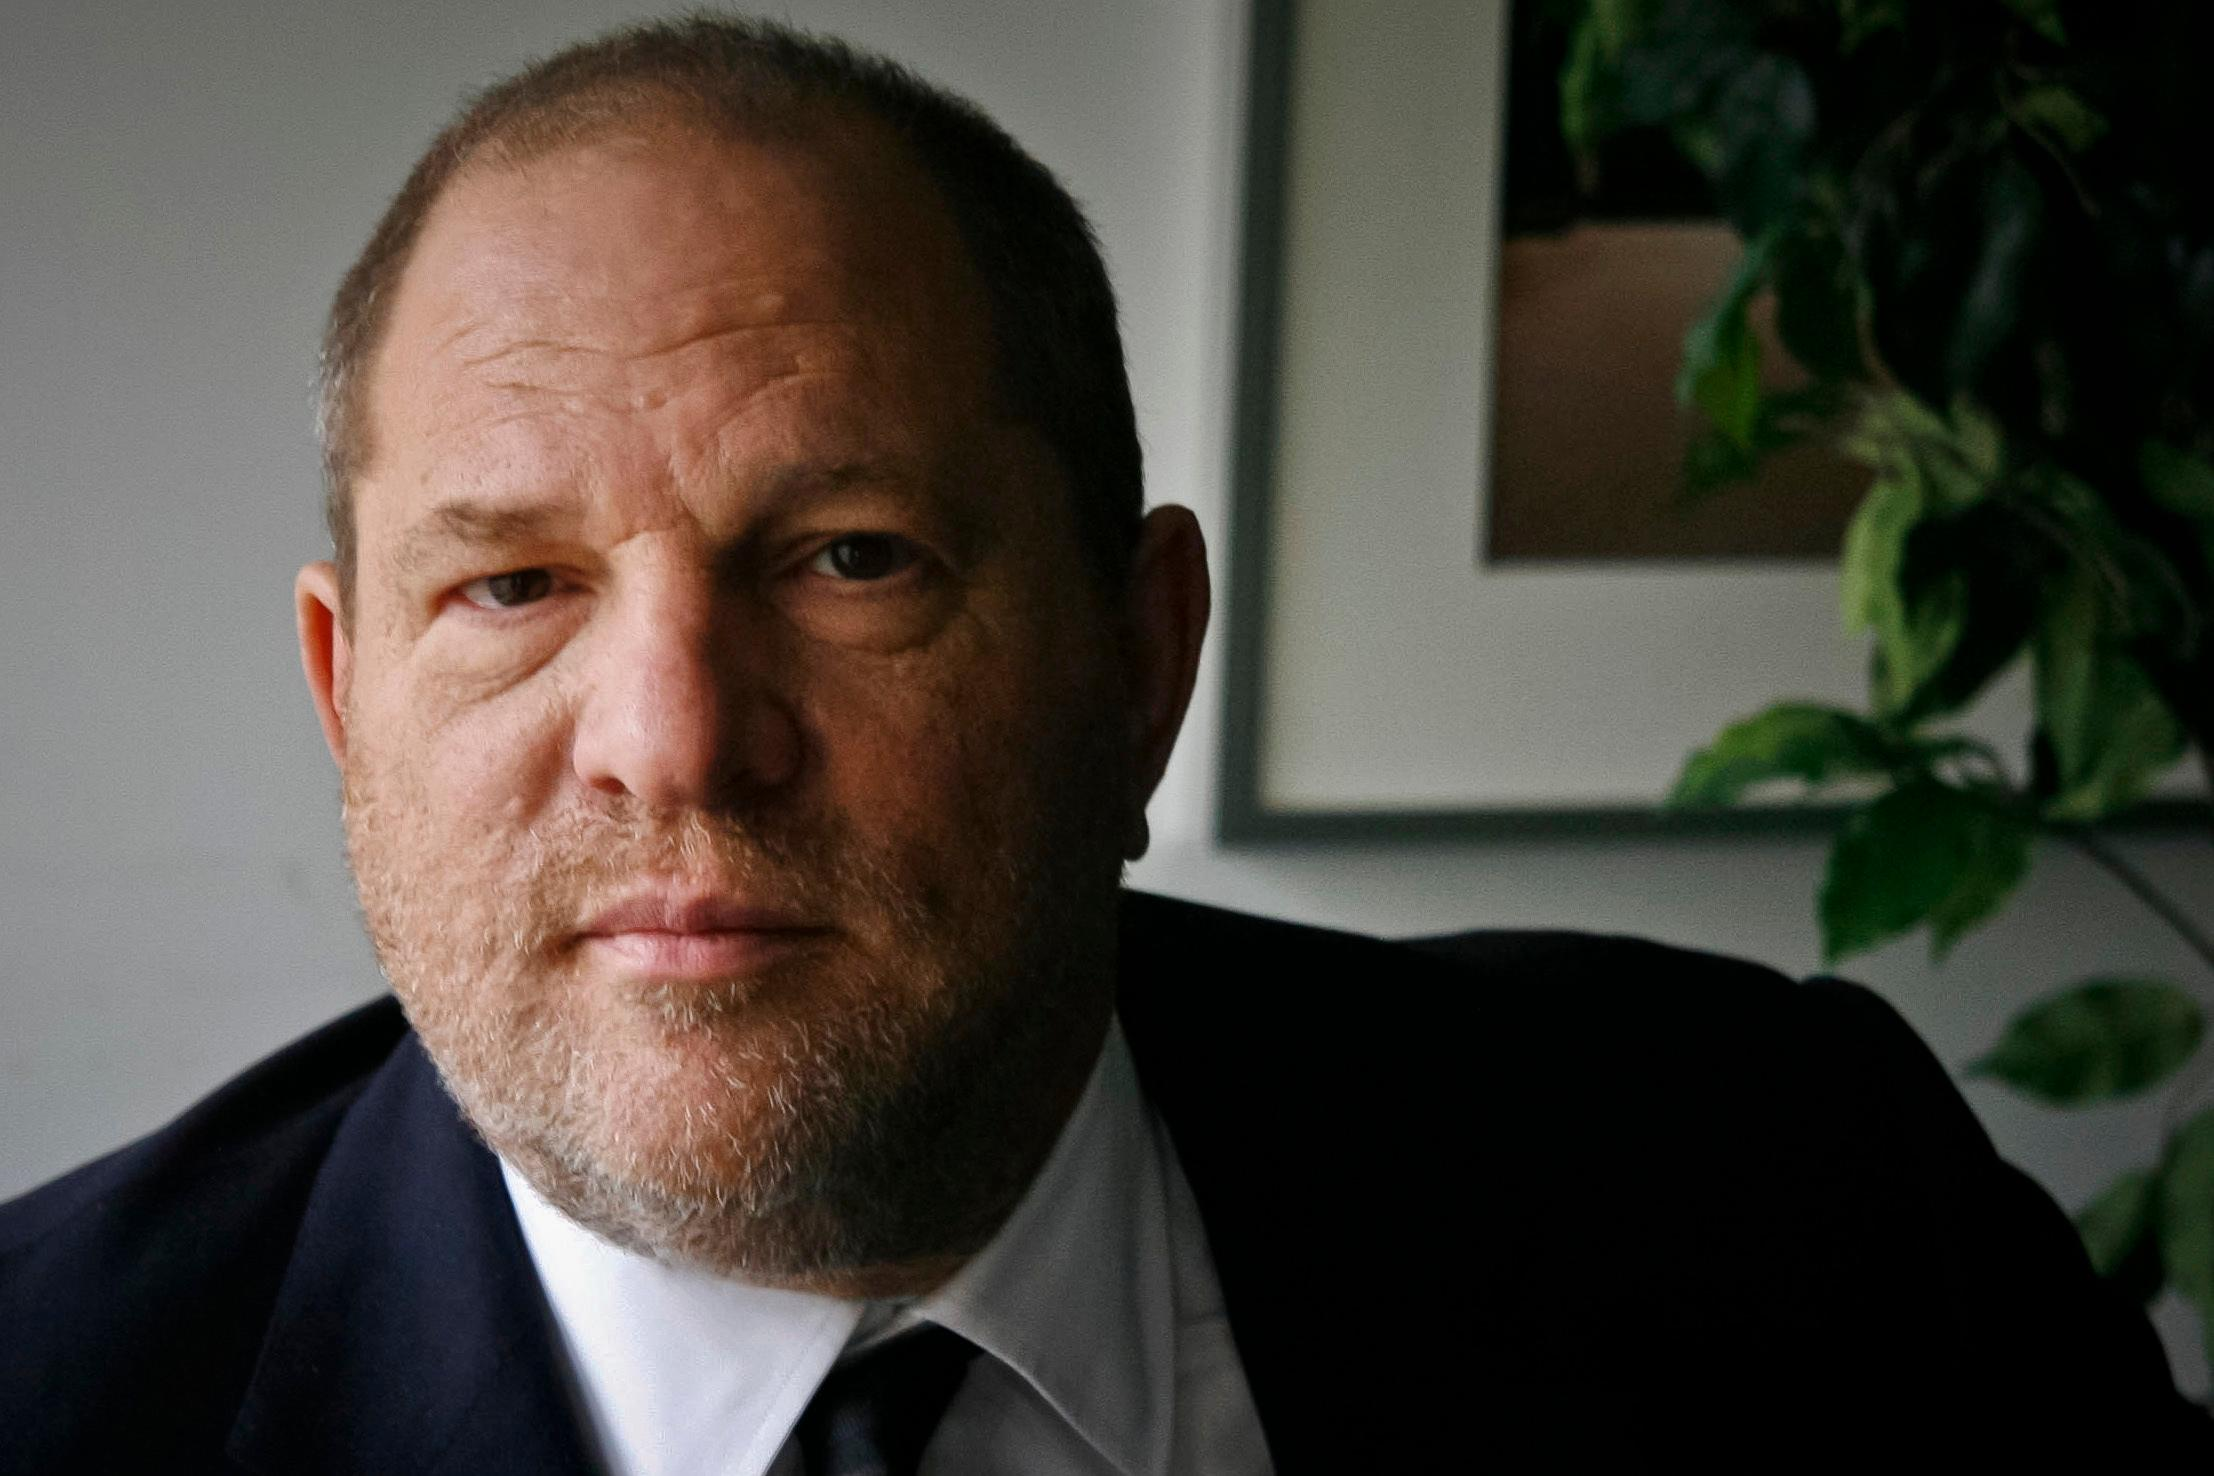 FILE - In this Nov. 23, 2011 file photo, film producer Harvey Weinstein poses for a photo in New York. Six women filed a federal lawsuit against Weinstein on Wednesday, Dec. 6, 2017, claiming that the movie mogul's actions to cover up assaults amounted to civil racketeering. (AP Photo/John Carucci, File)